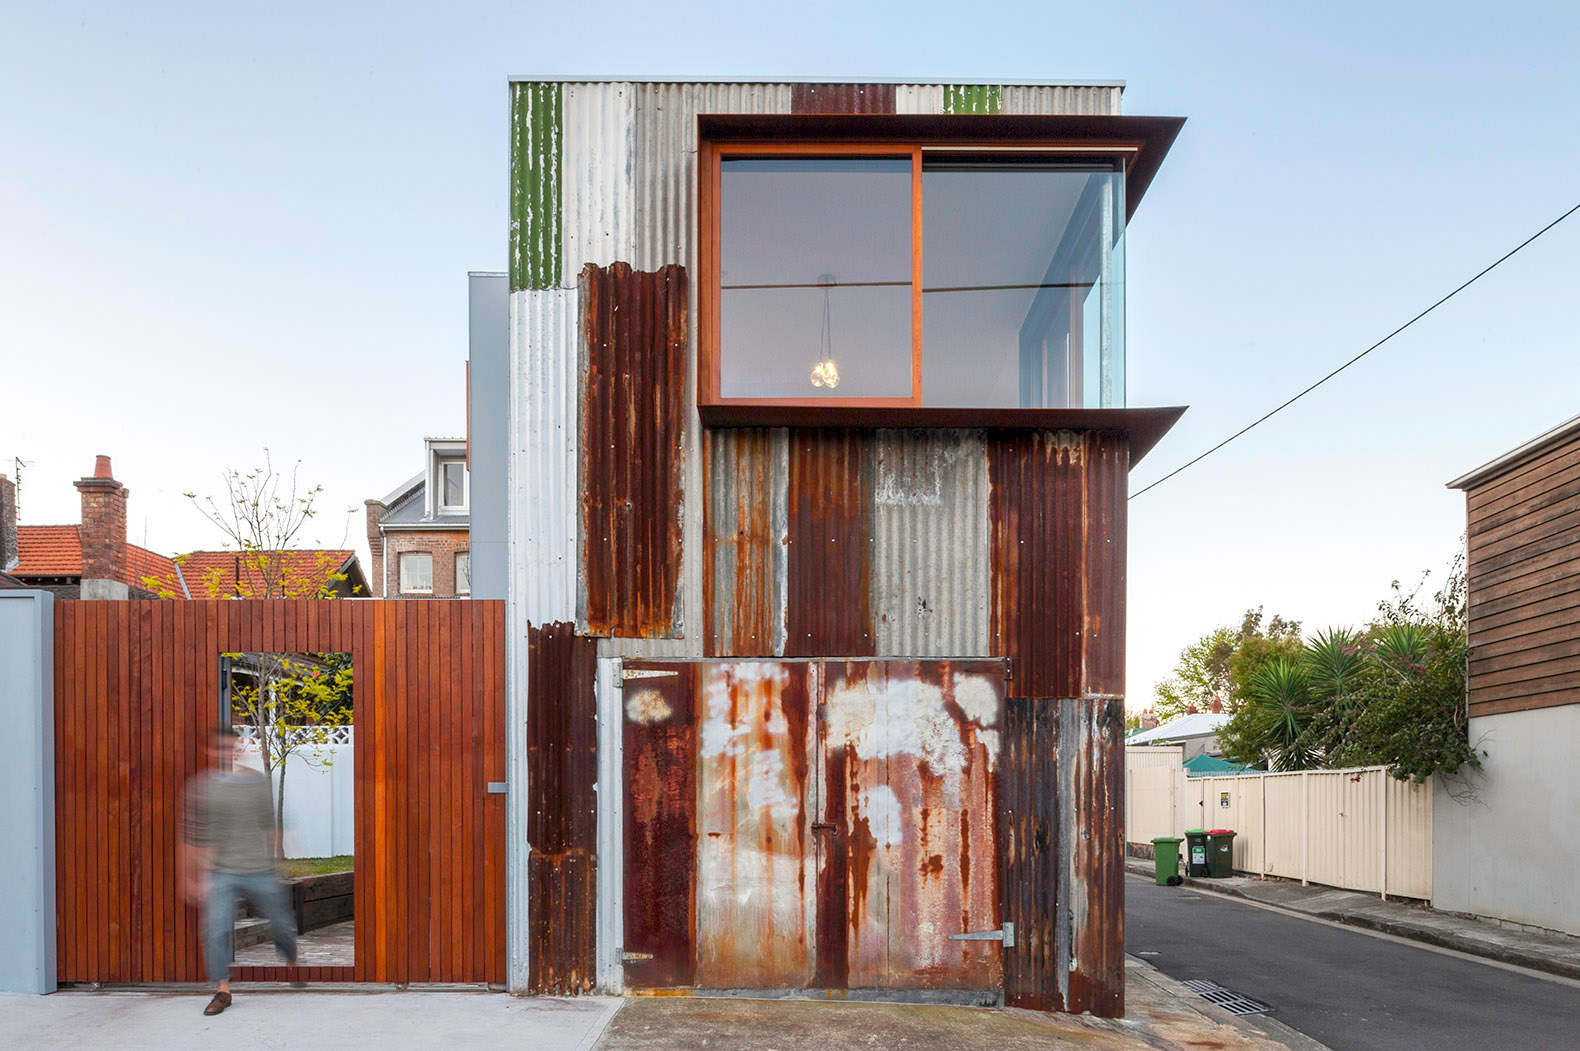 Rusty tin shed transformed into beautiful two-story studio in Sydney